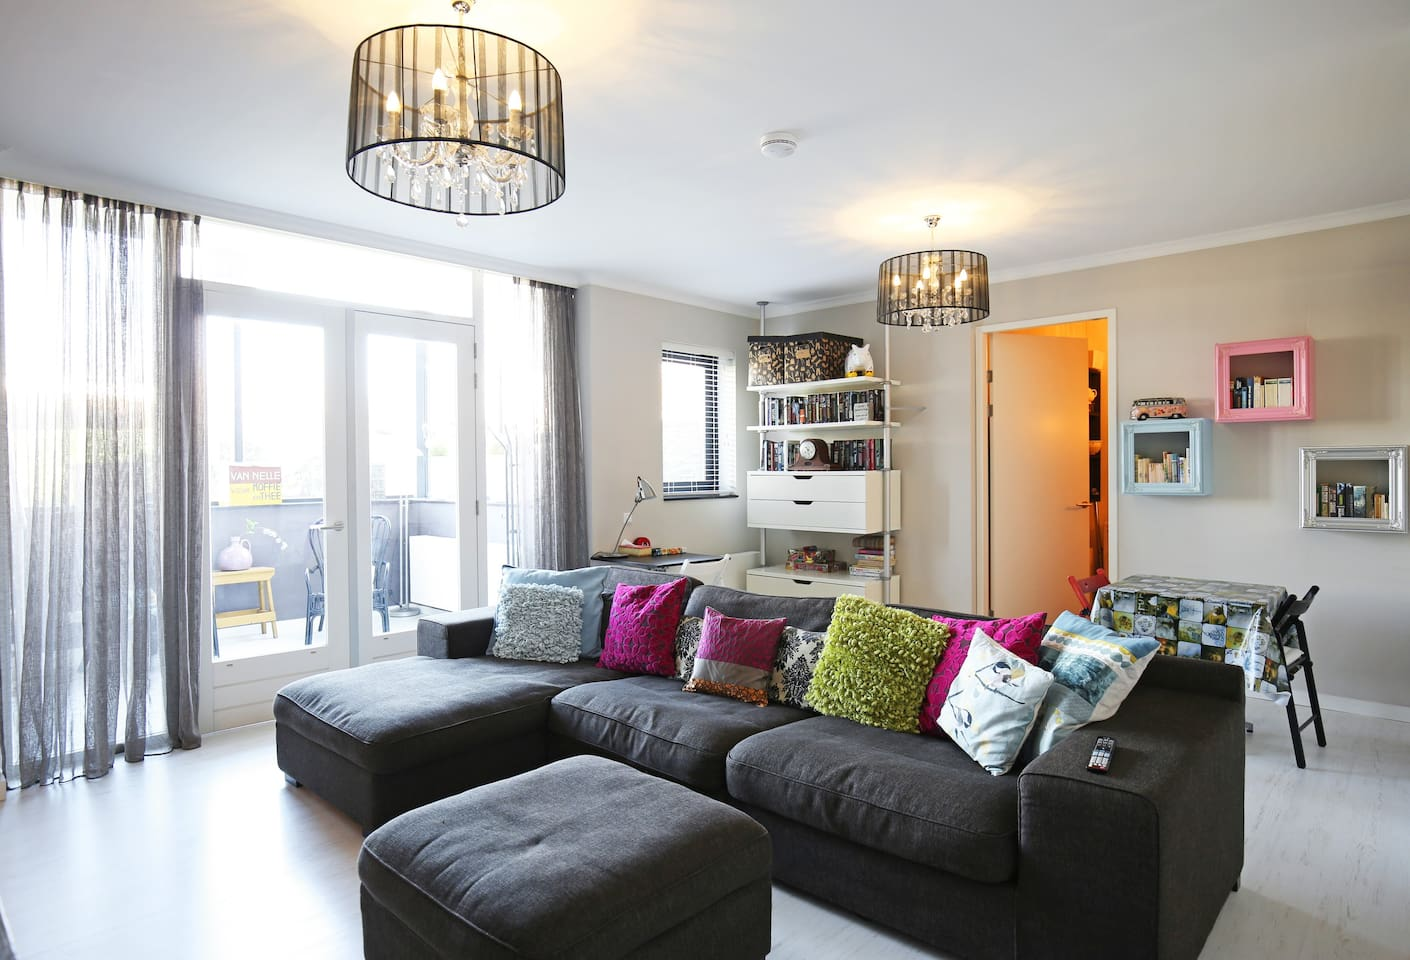 Welcome in our cosy apartment! We are looking forward meeting you.